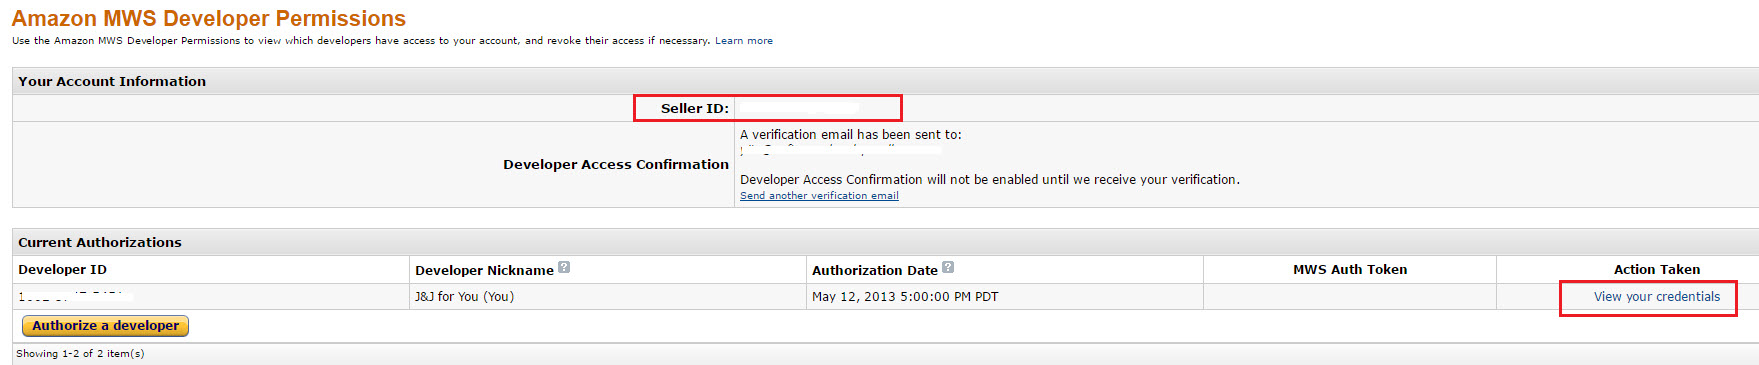 On Amazon MWS Developer Permissions page, click View Your Credentials to get your MWS credentials